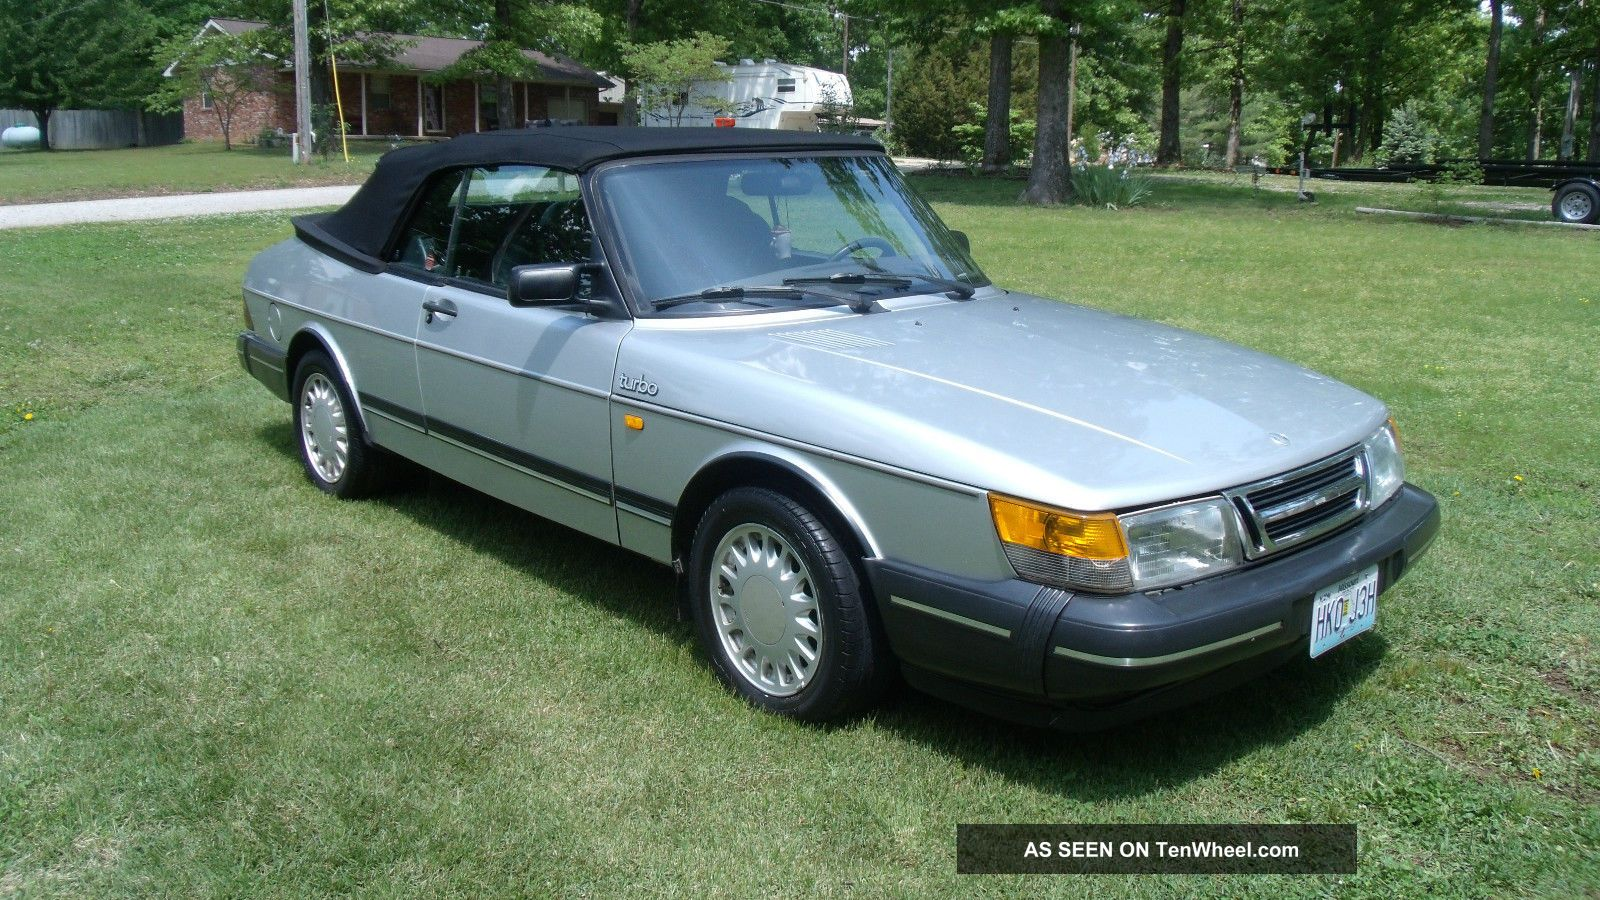 1987 Saab 900 Turbo 5 - Speed Convertible Power Top With Toneau Cover 900 photo